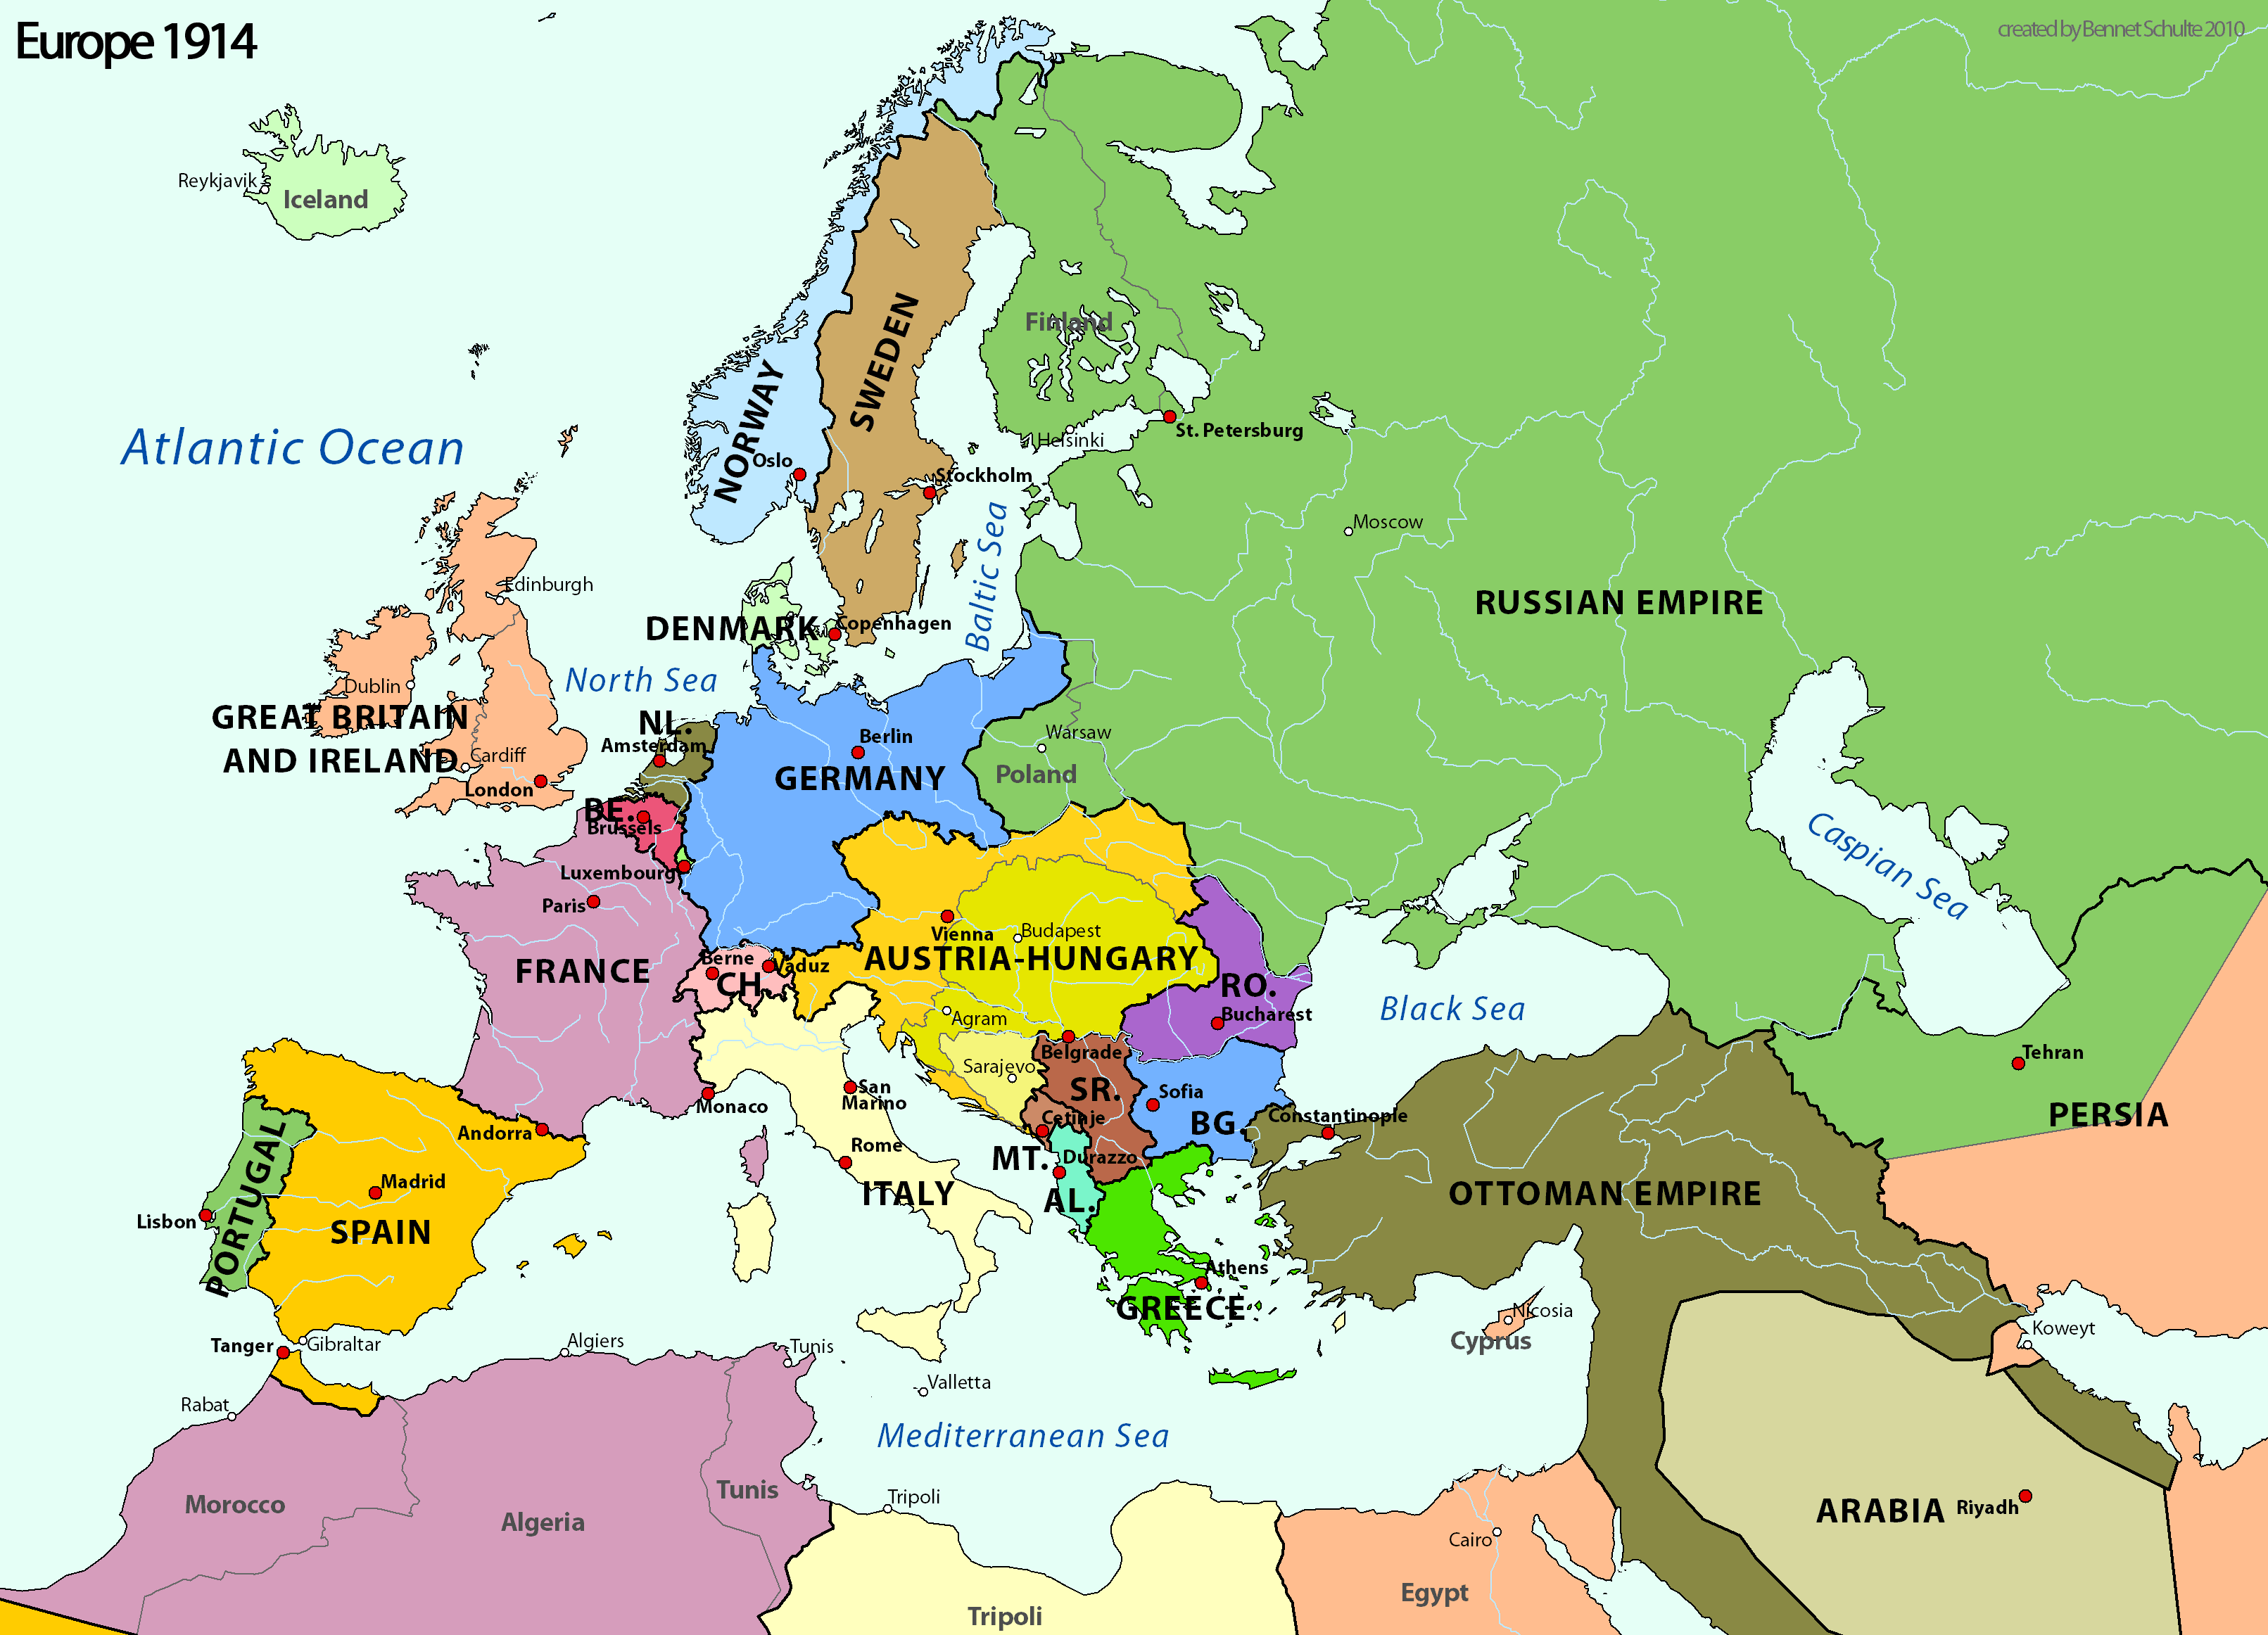 Central Powers Wikipedia - Europe world war1 map 1914